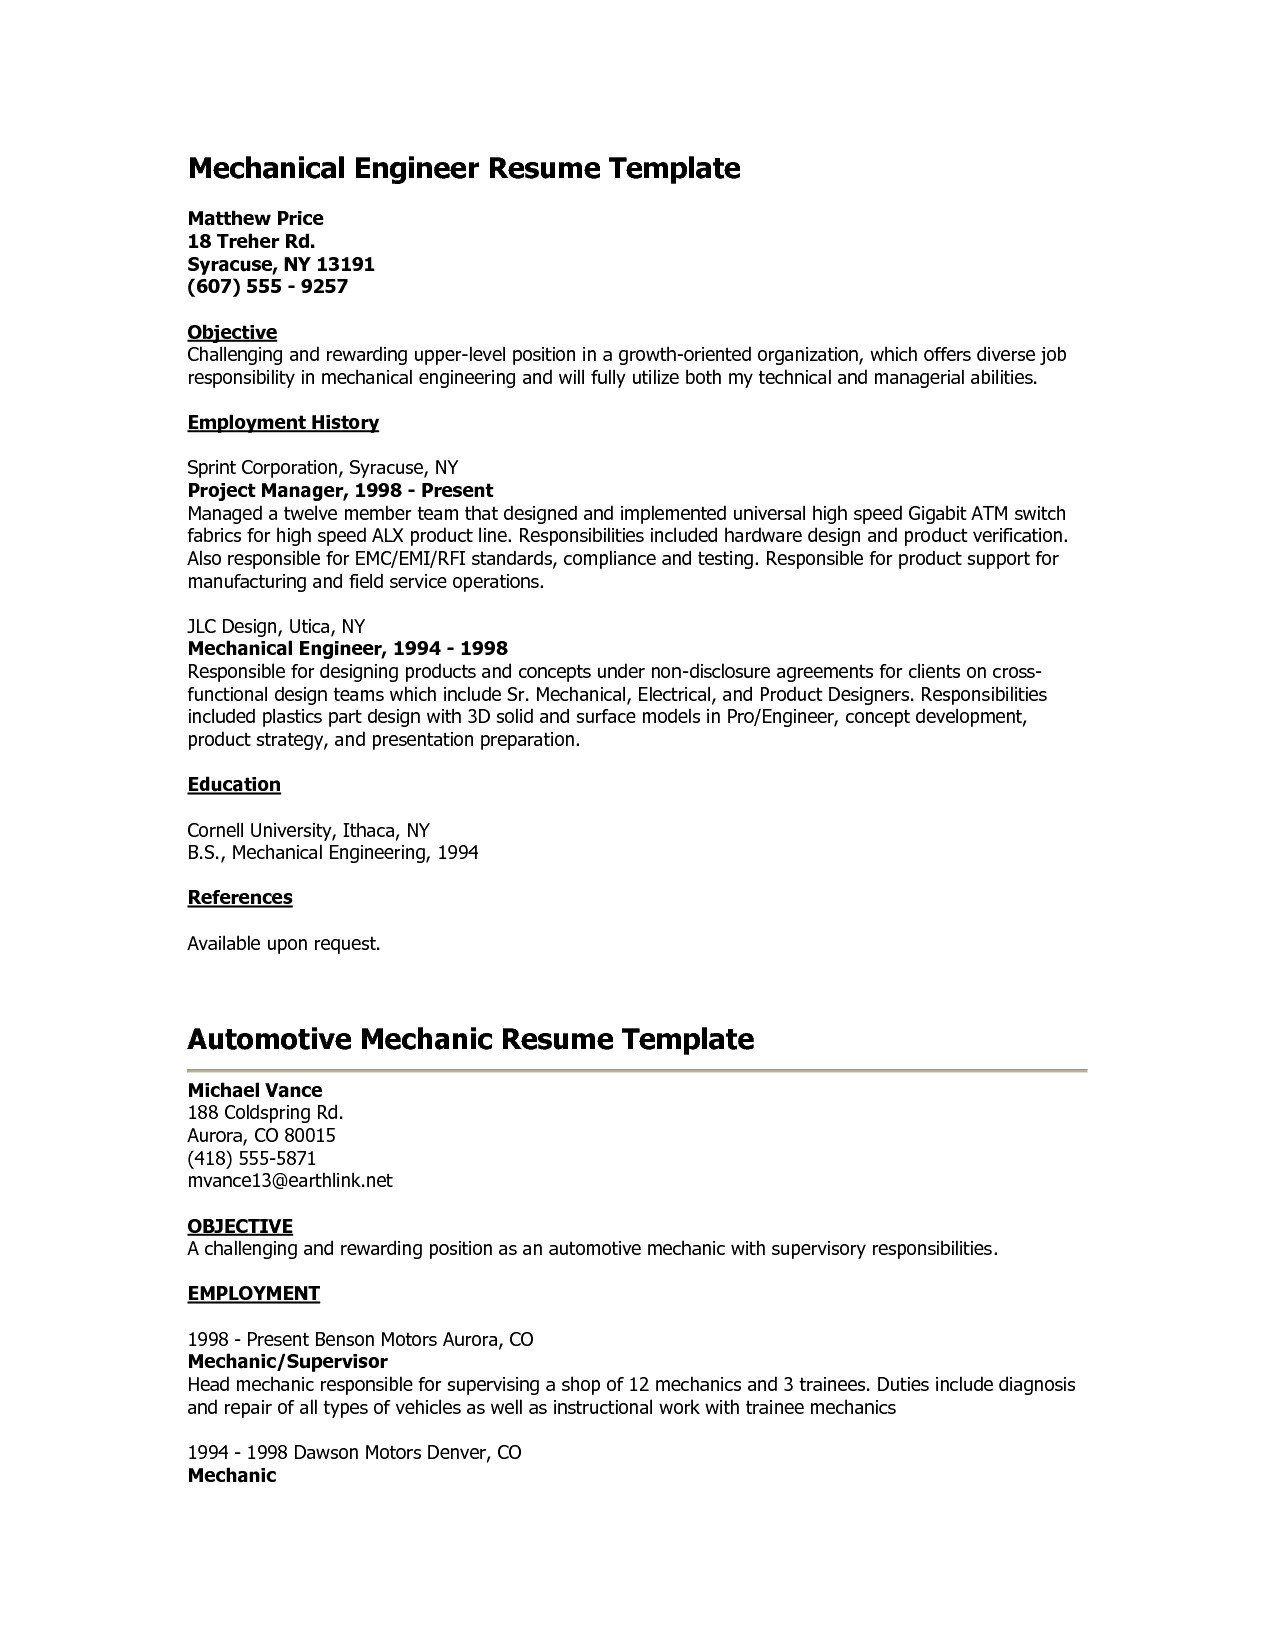 32 Fresh Bank Teller Resume No Experience In 2020 Mechanical